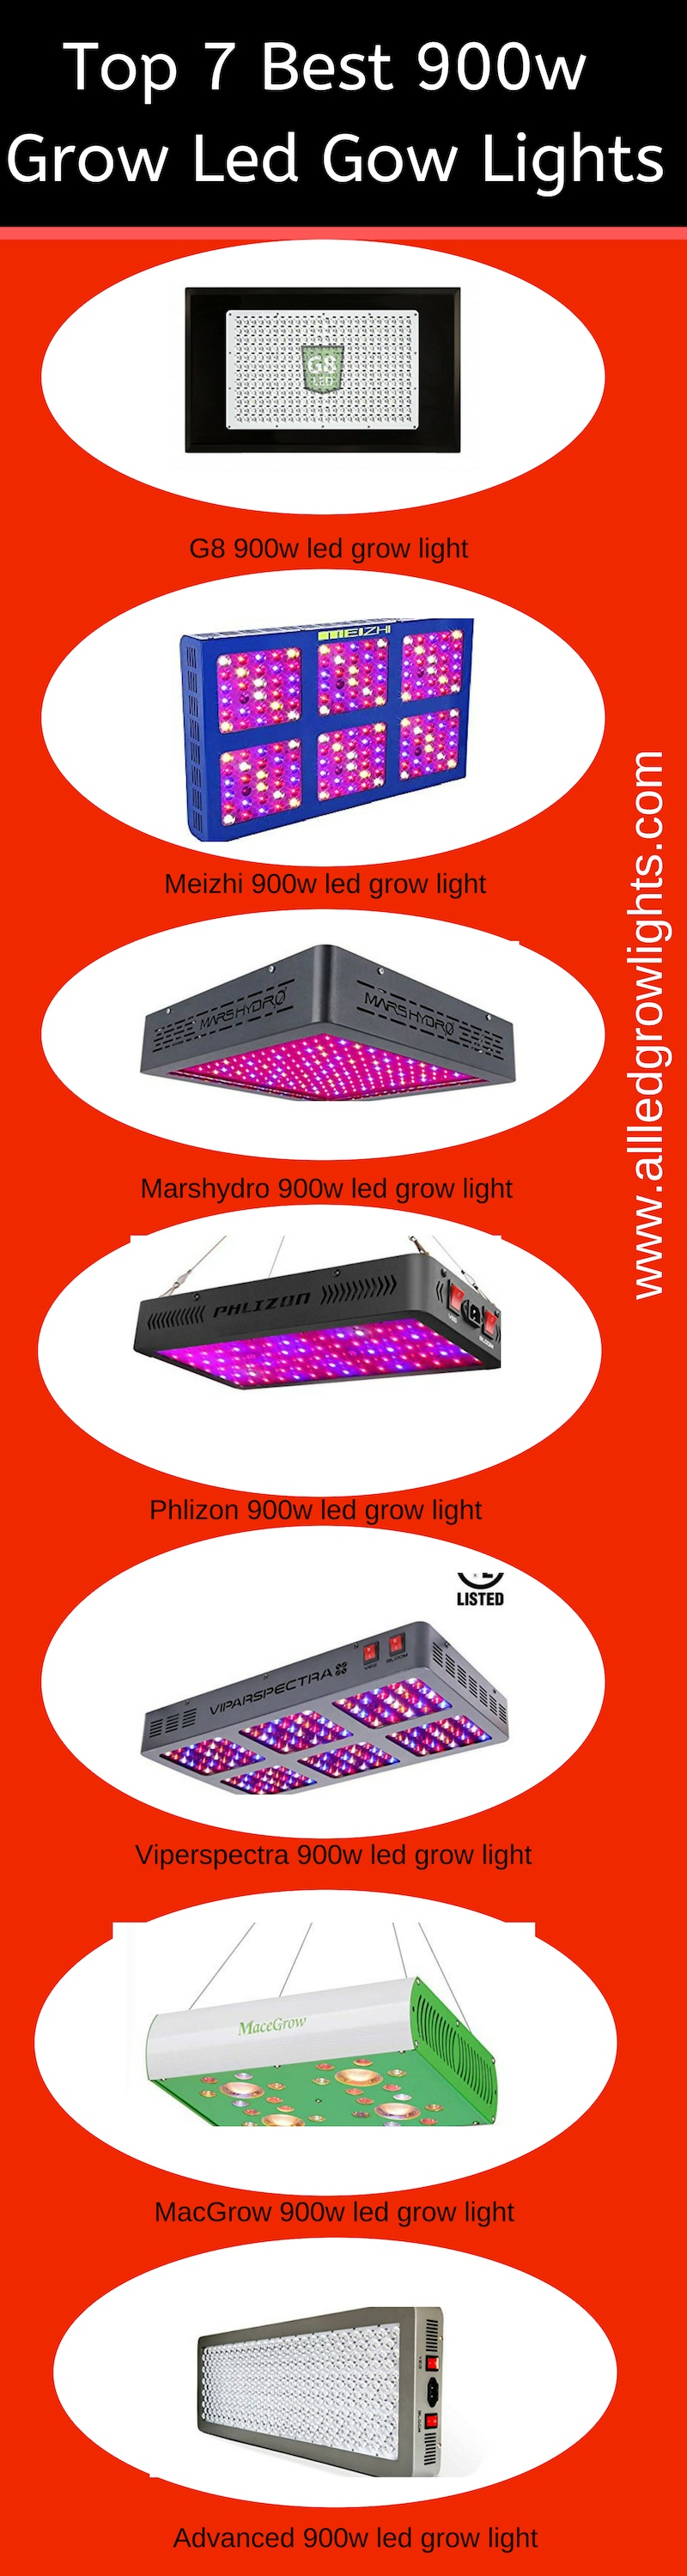 best 900 watt led grow light info graphicts